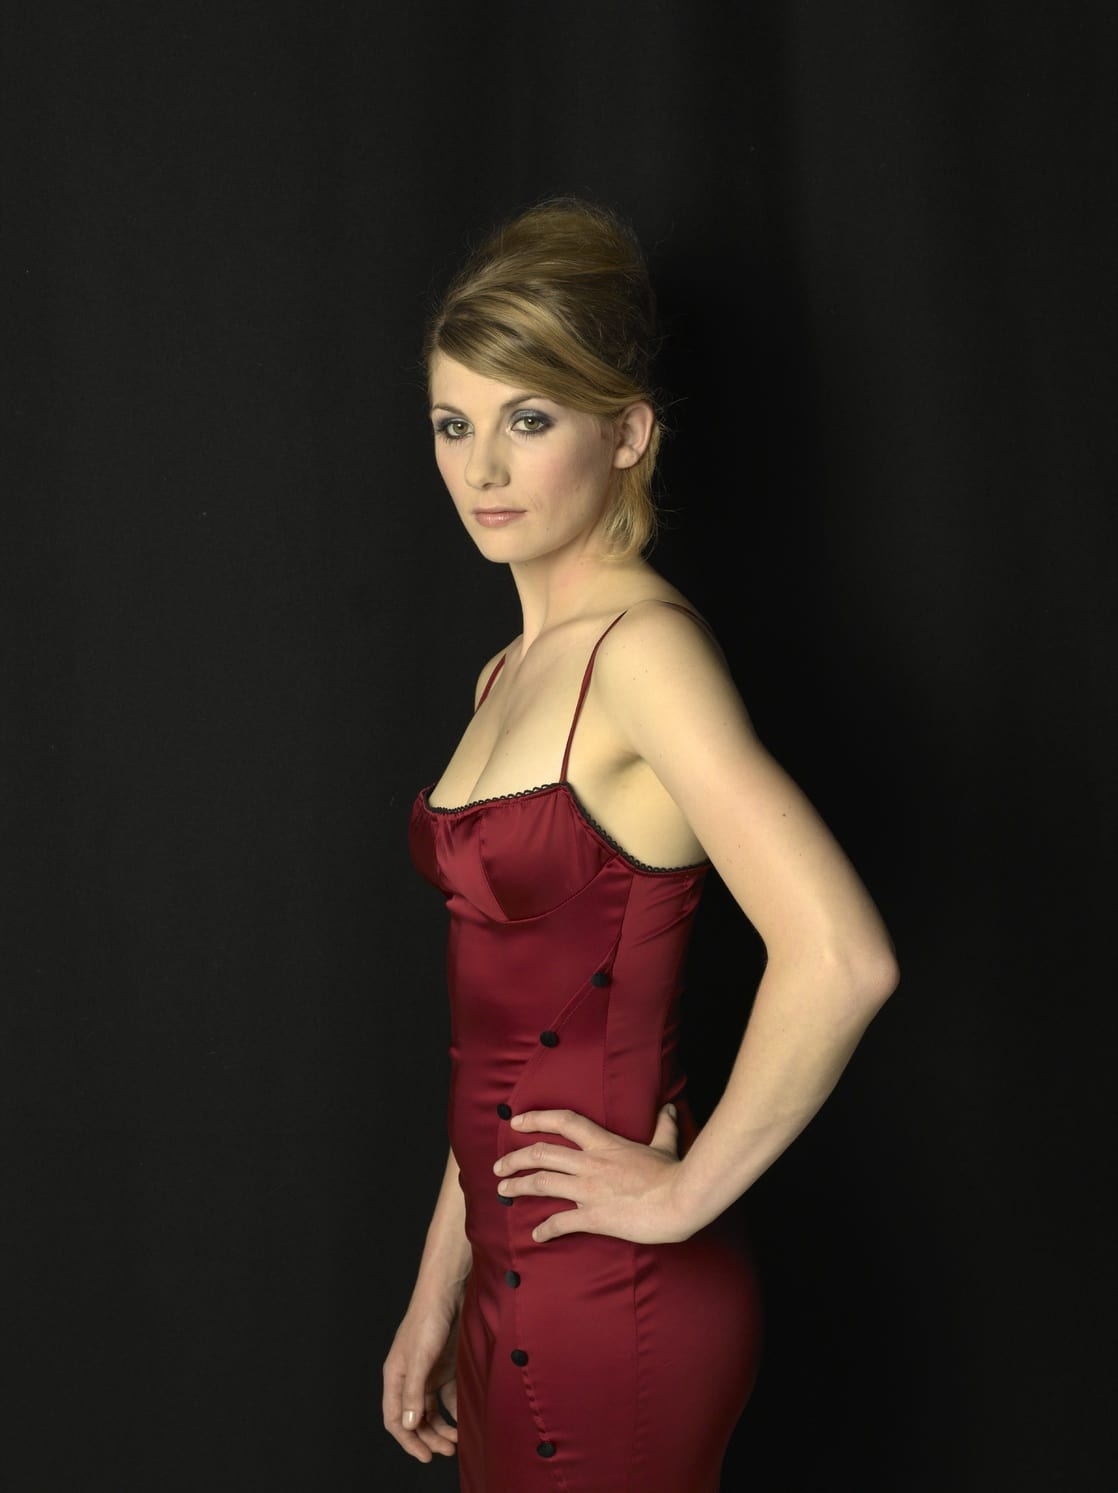 Hot Jodie Whittaker nude (62 photos), Tits, Fappening, Boobs, swimsuit 2006